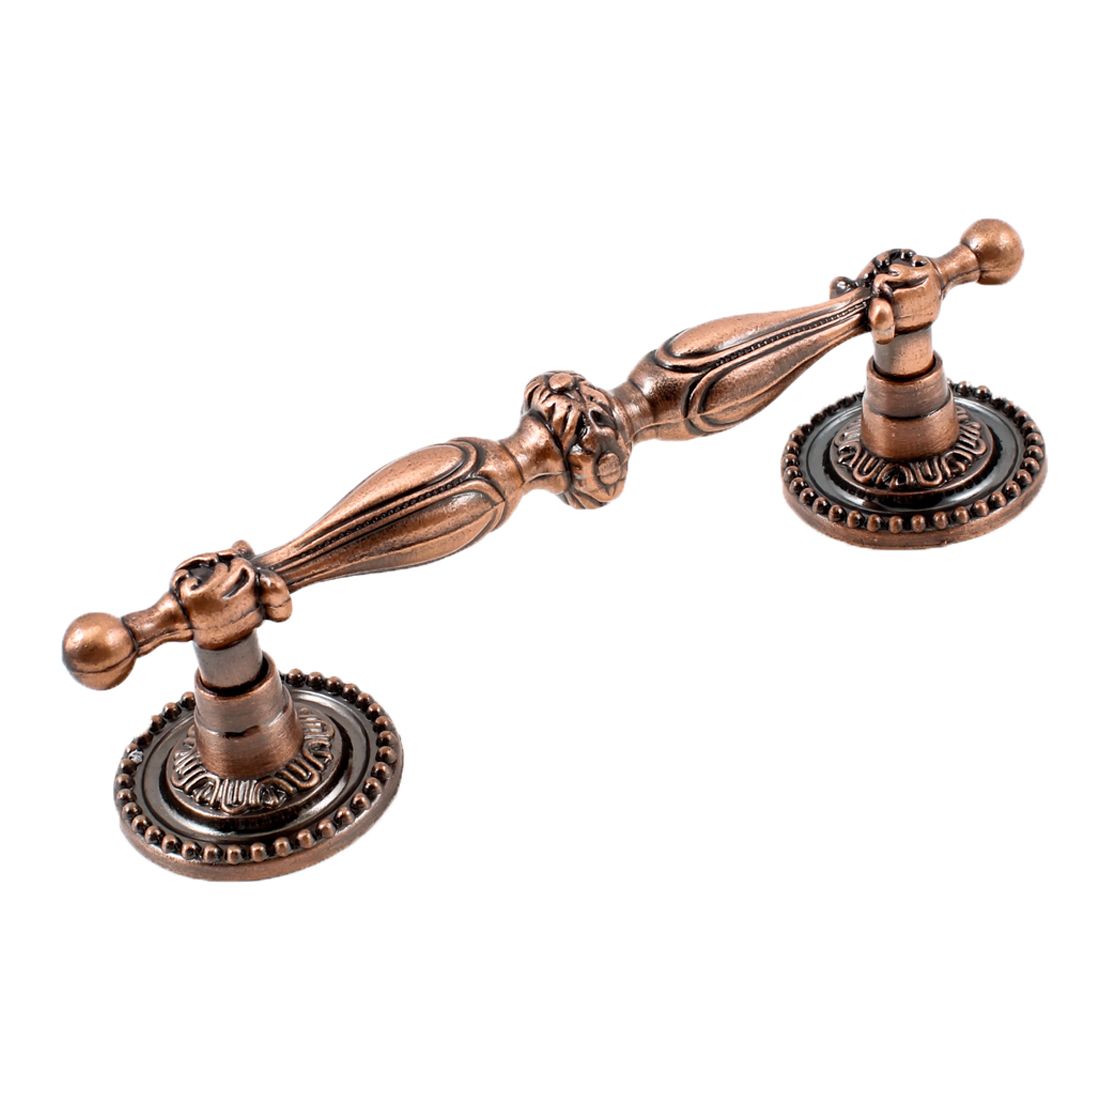 "4.9"" Length Floral Carved Furniture Door Pull Handle Copper Tone"